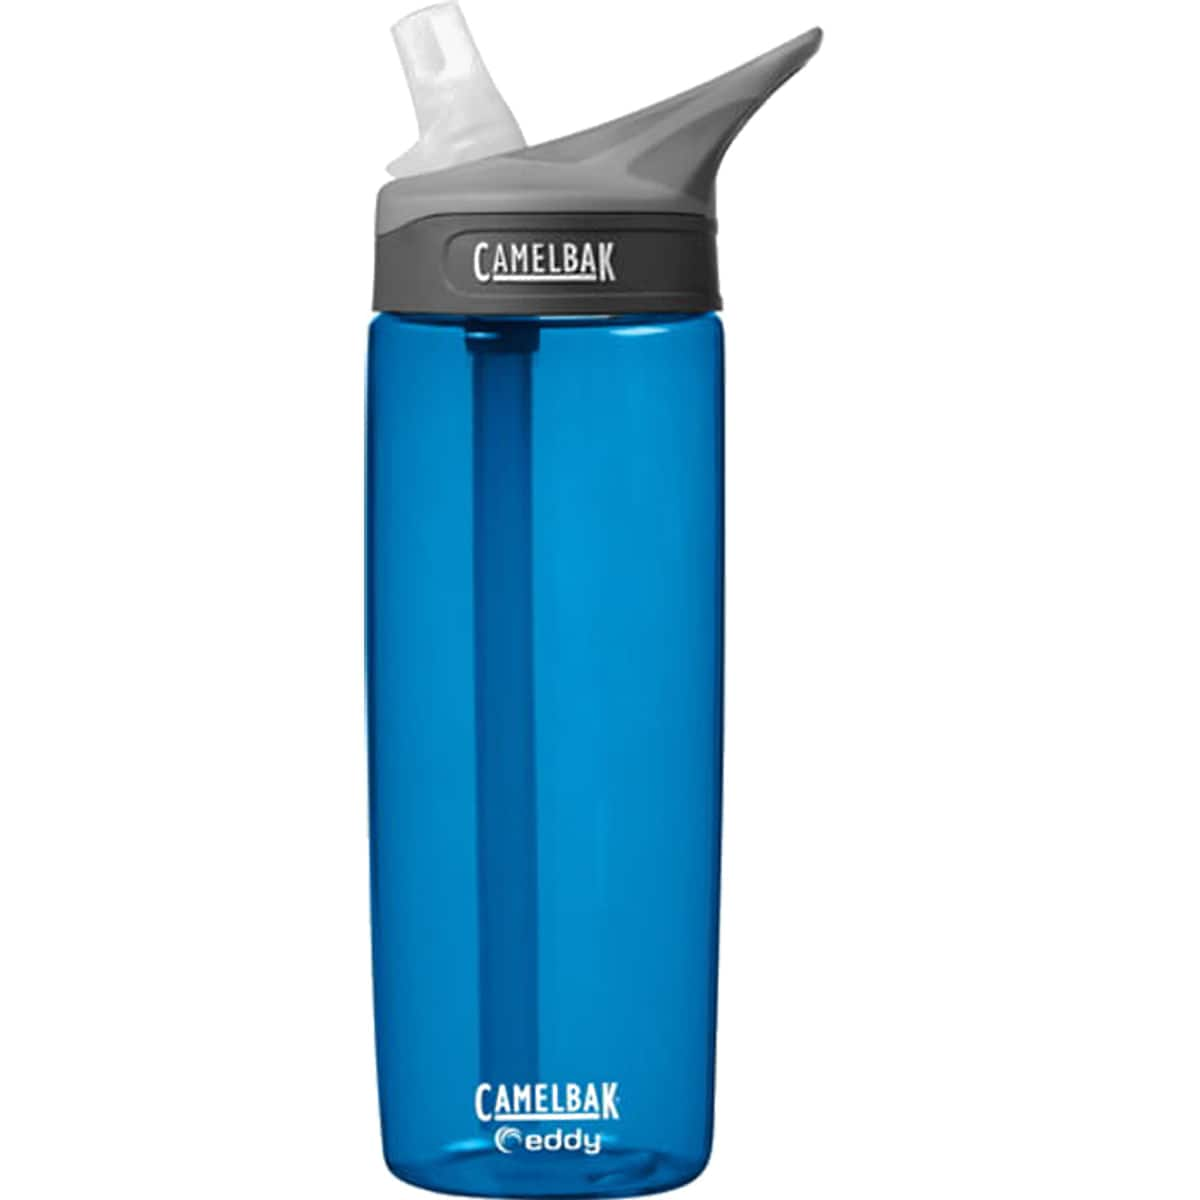 Camelbak Eddy Water Bottle (various colors) $4.99